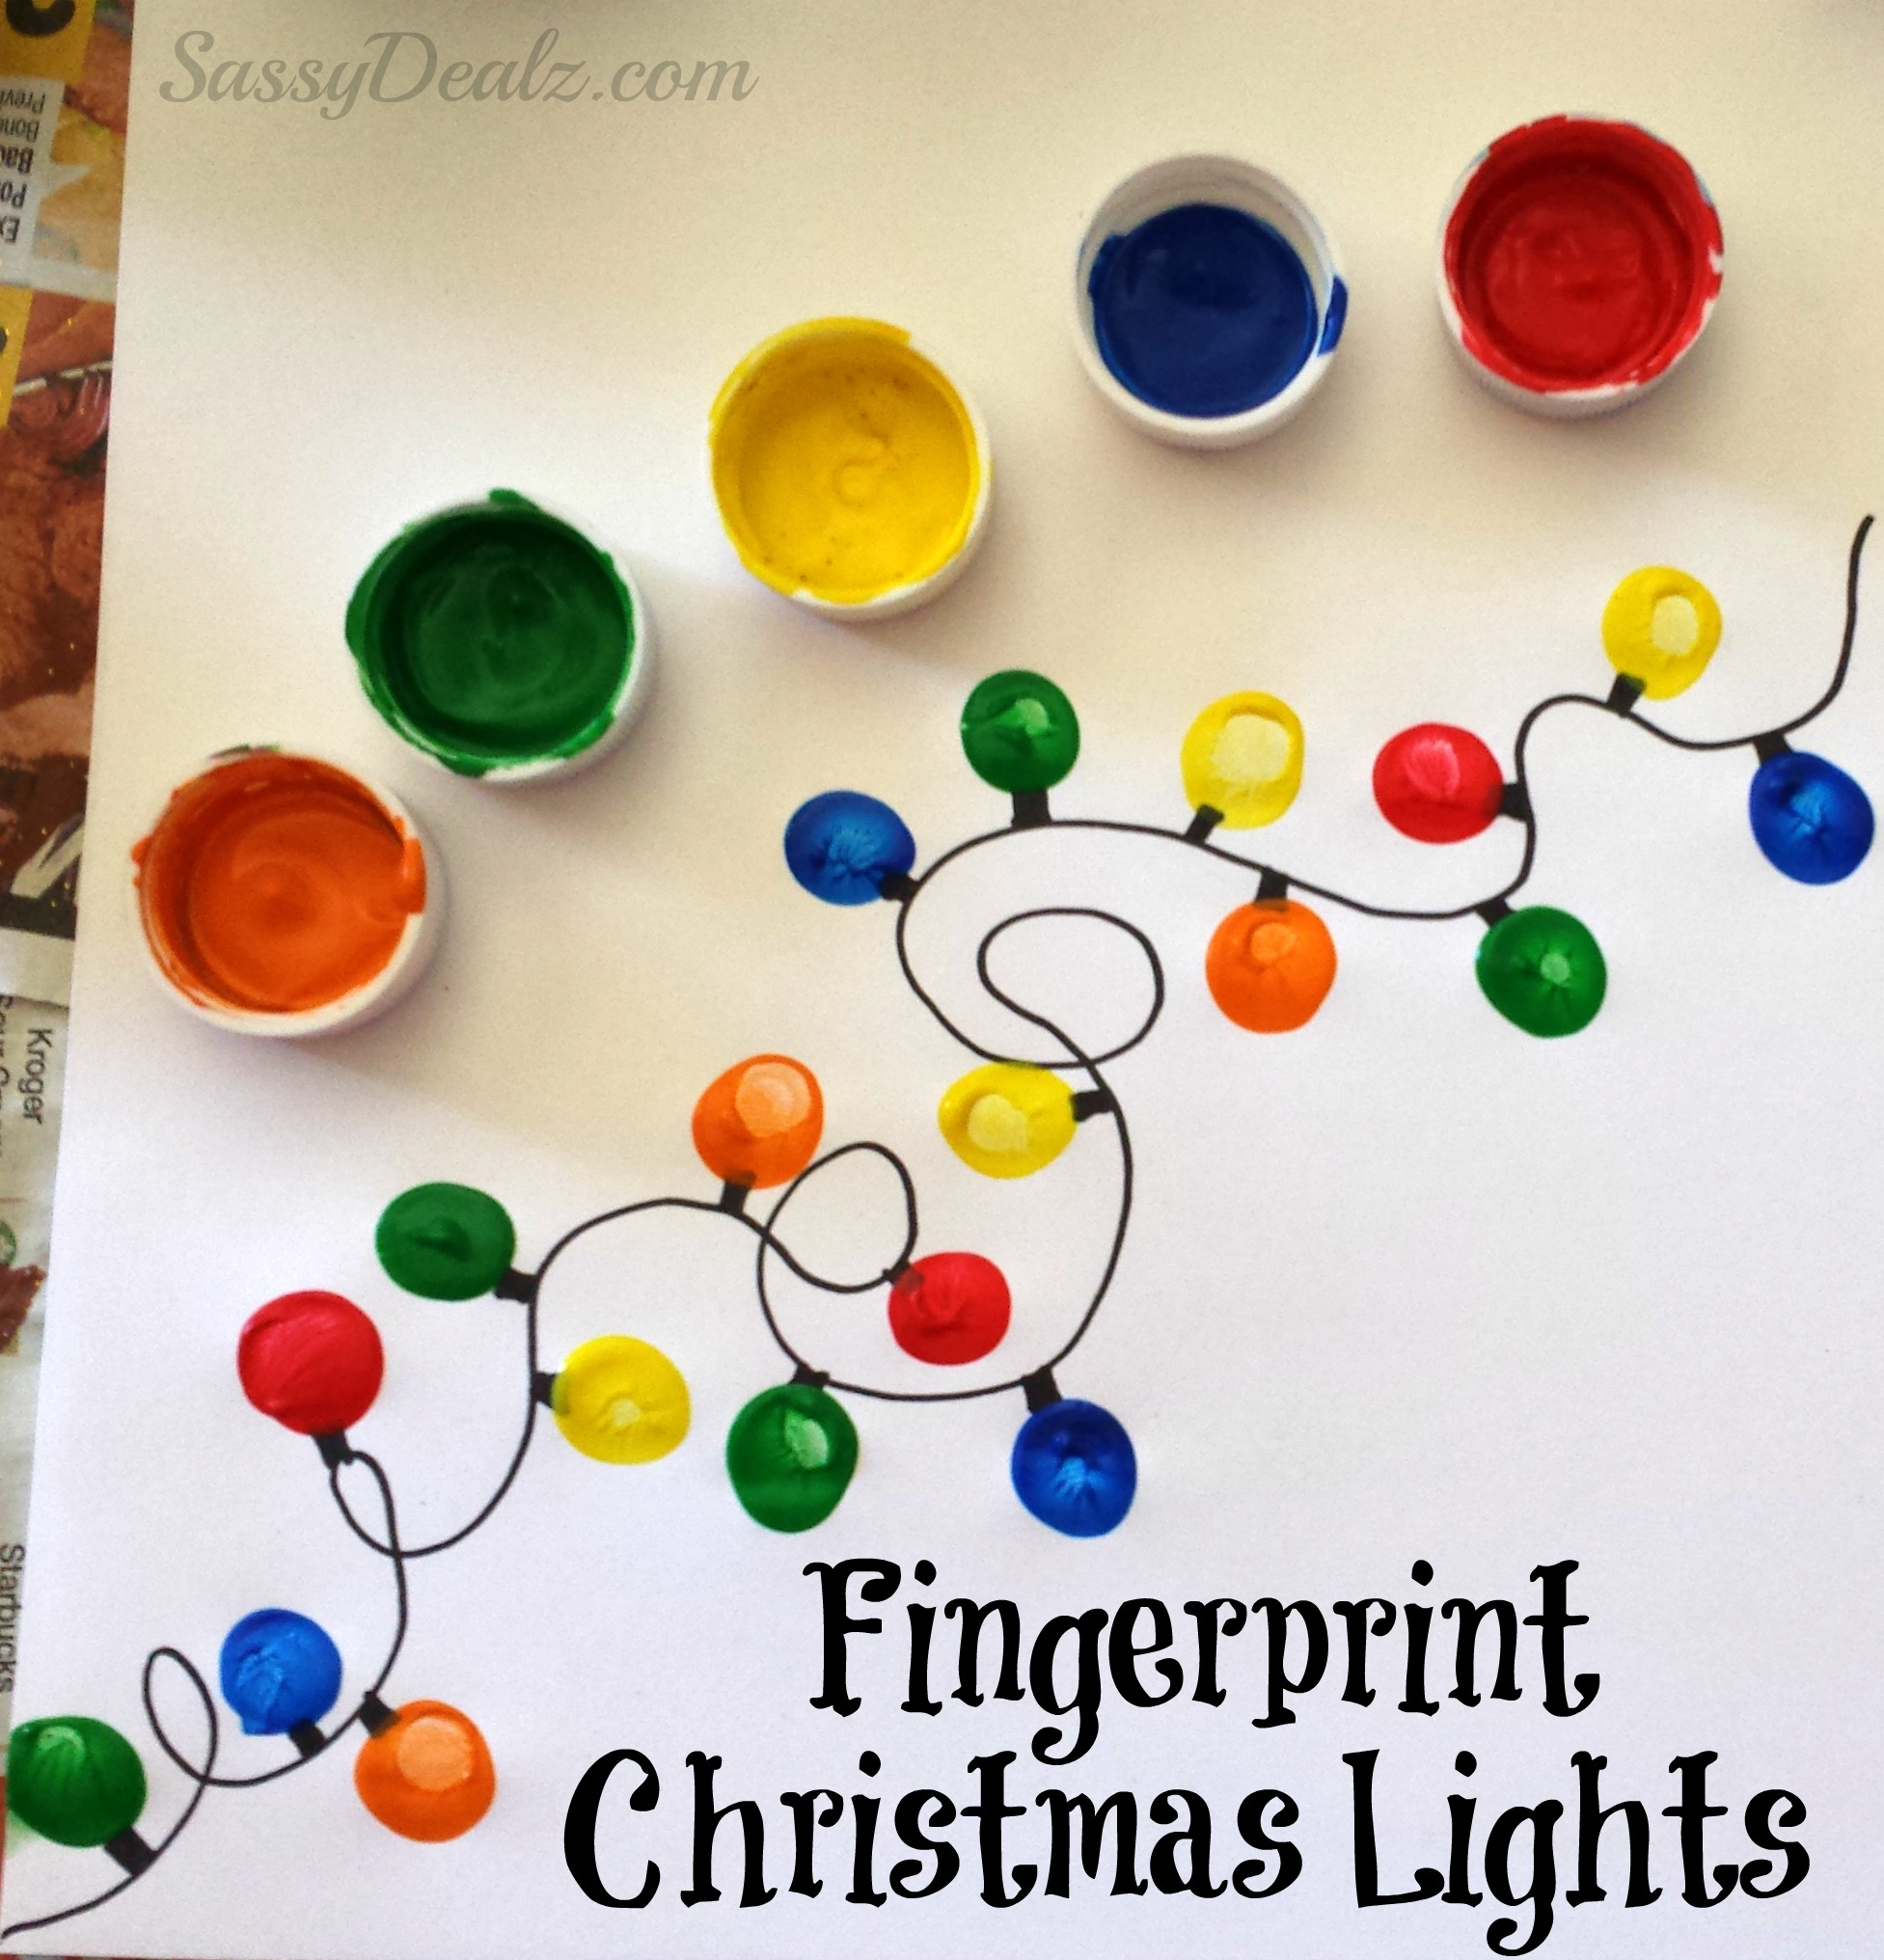 diy fingerprint christmas tree light craft for kids just have the child dip their pointer